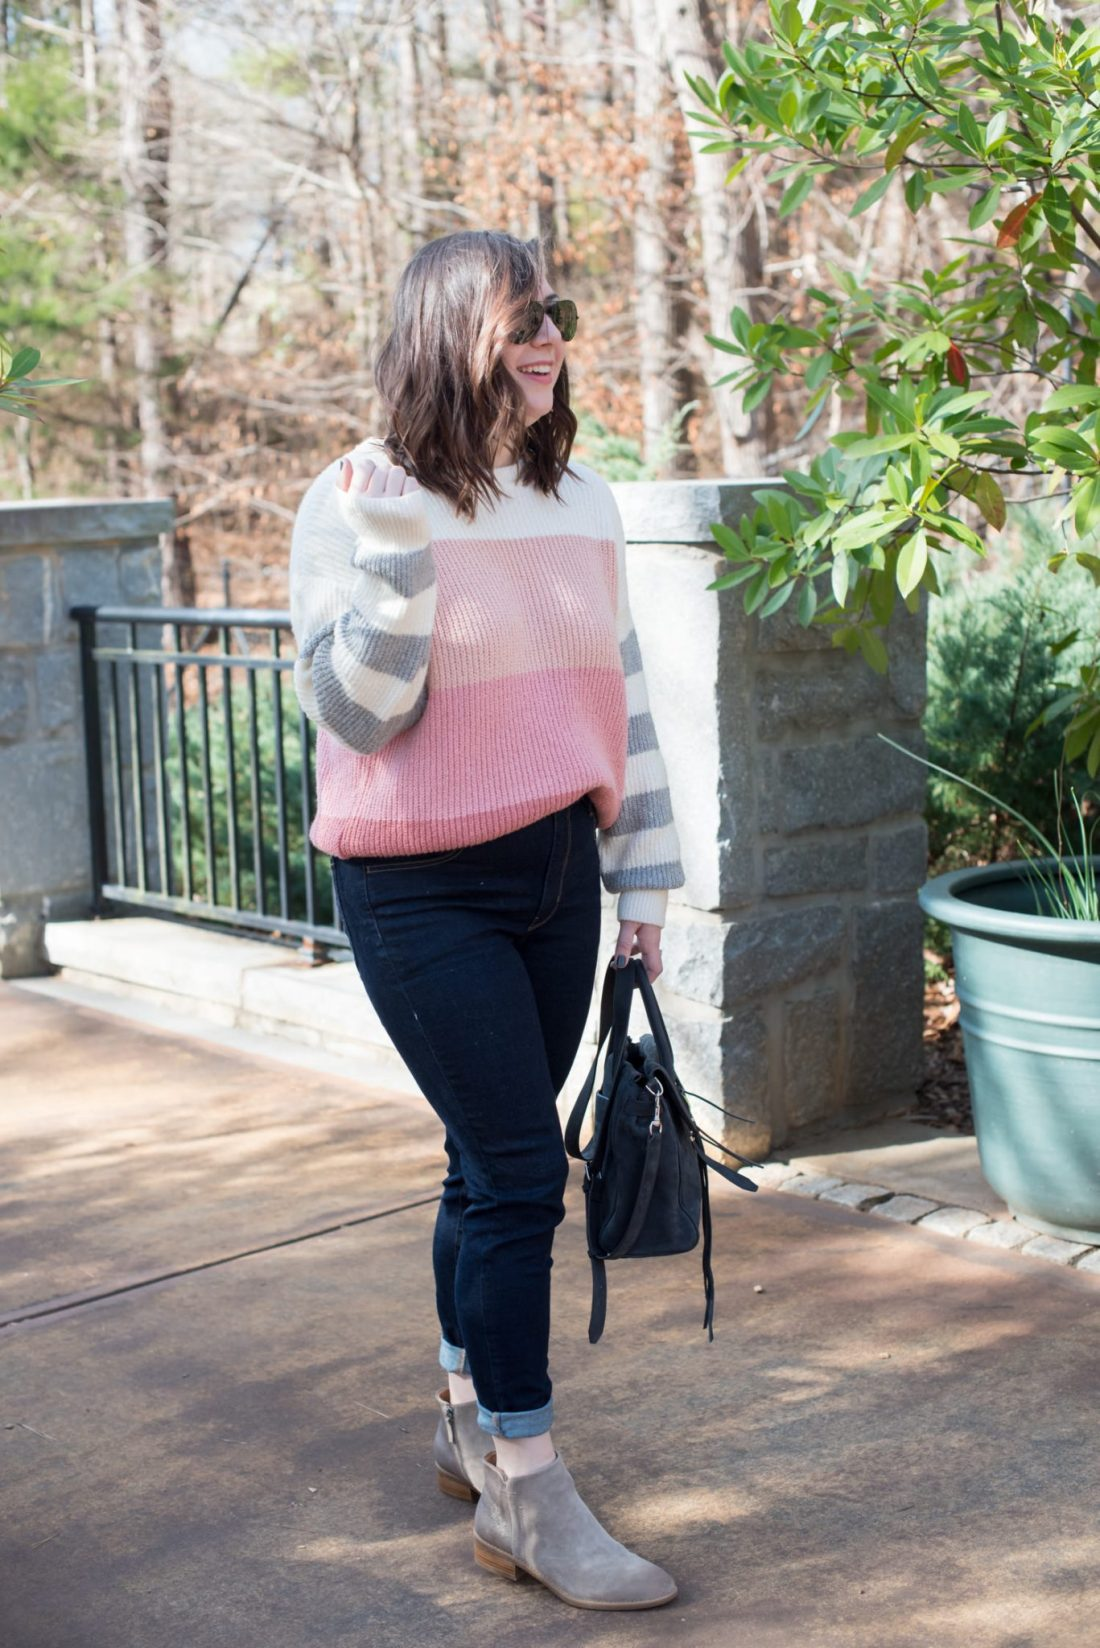 What to Wear for a Casual Valentine's Day // www.missmollymoon